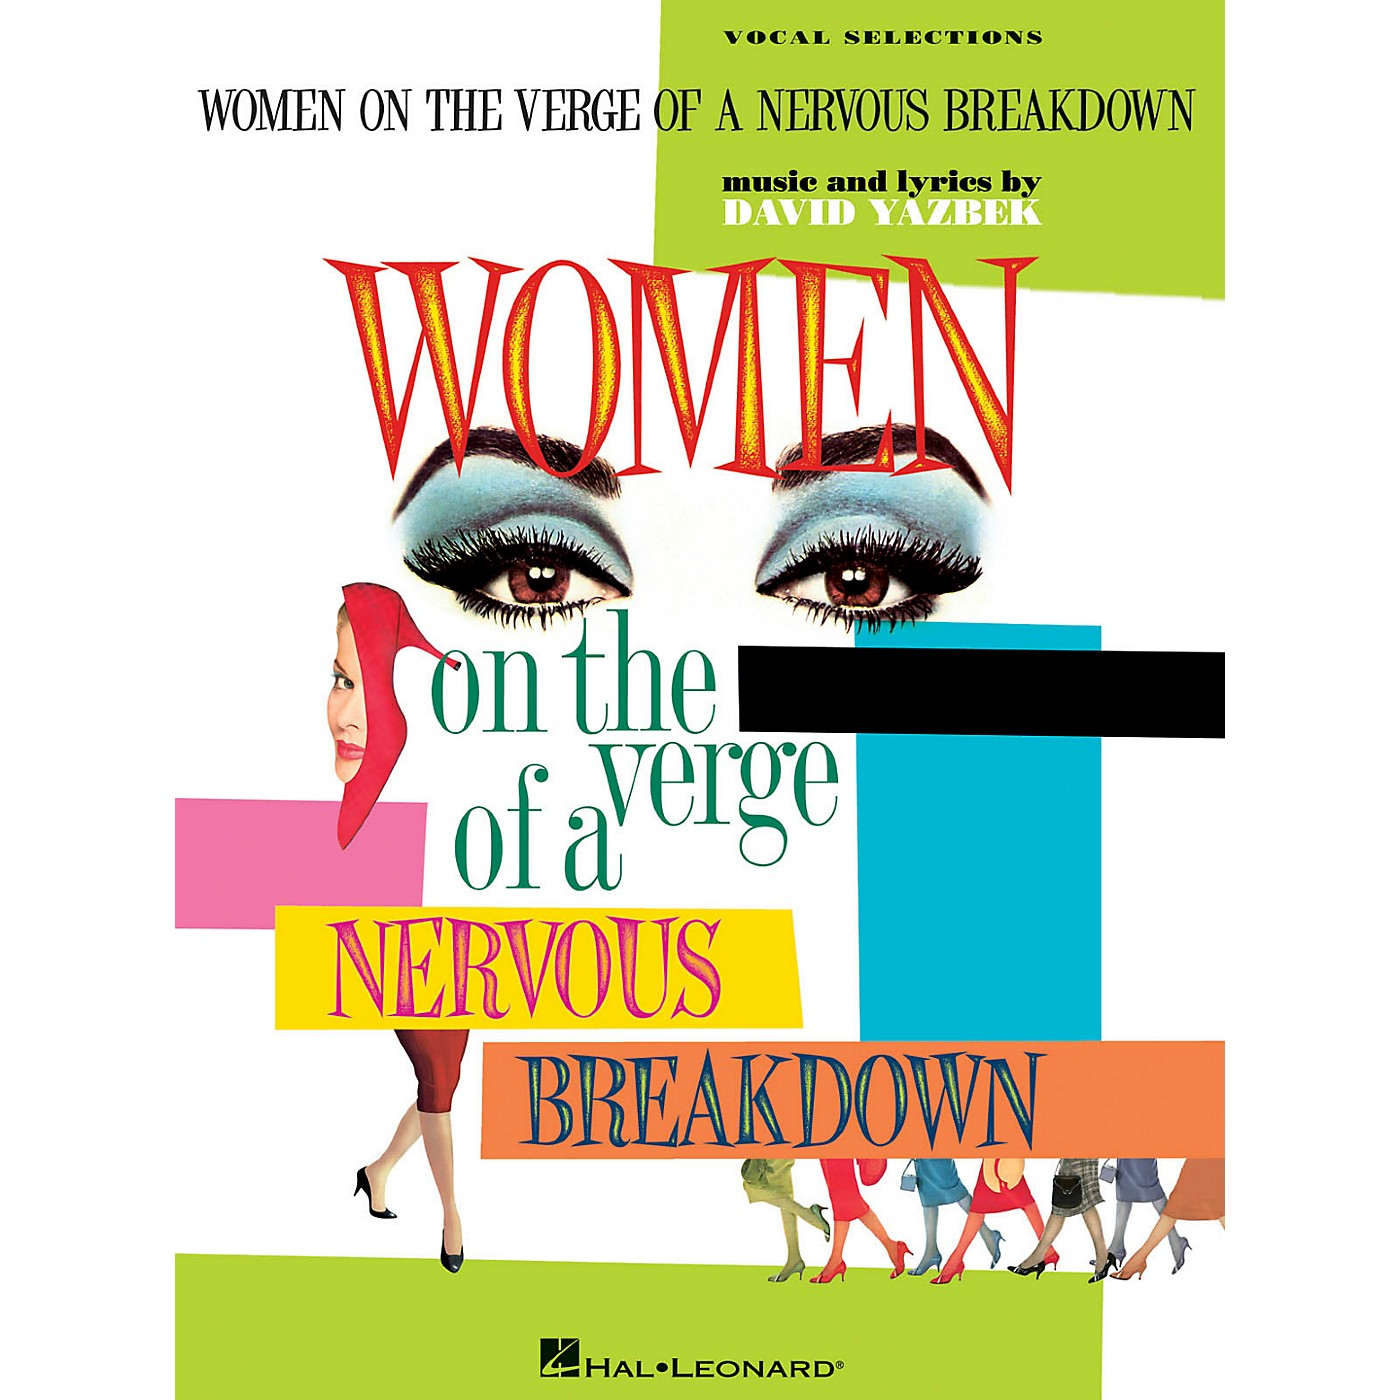 Hal Leonard Women On The Verge Of A Nervous Breakdown - Piano/Vocal Selections thumbnail